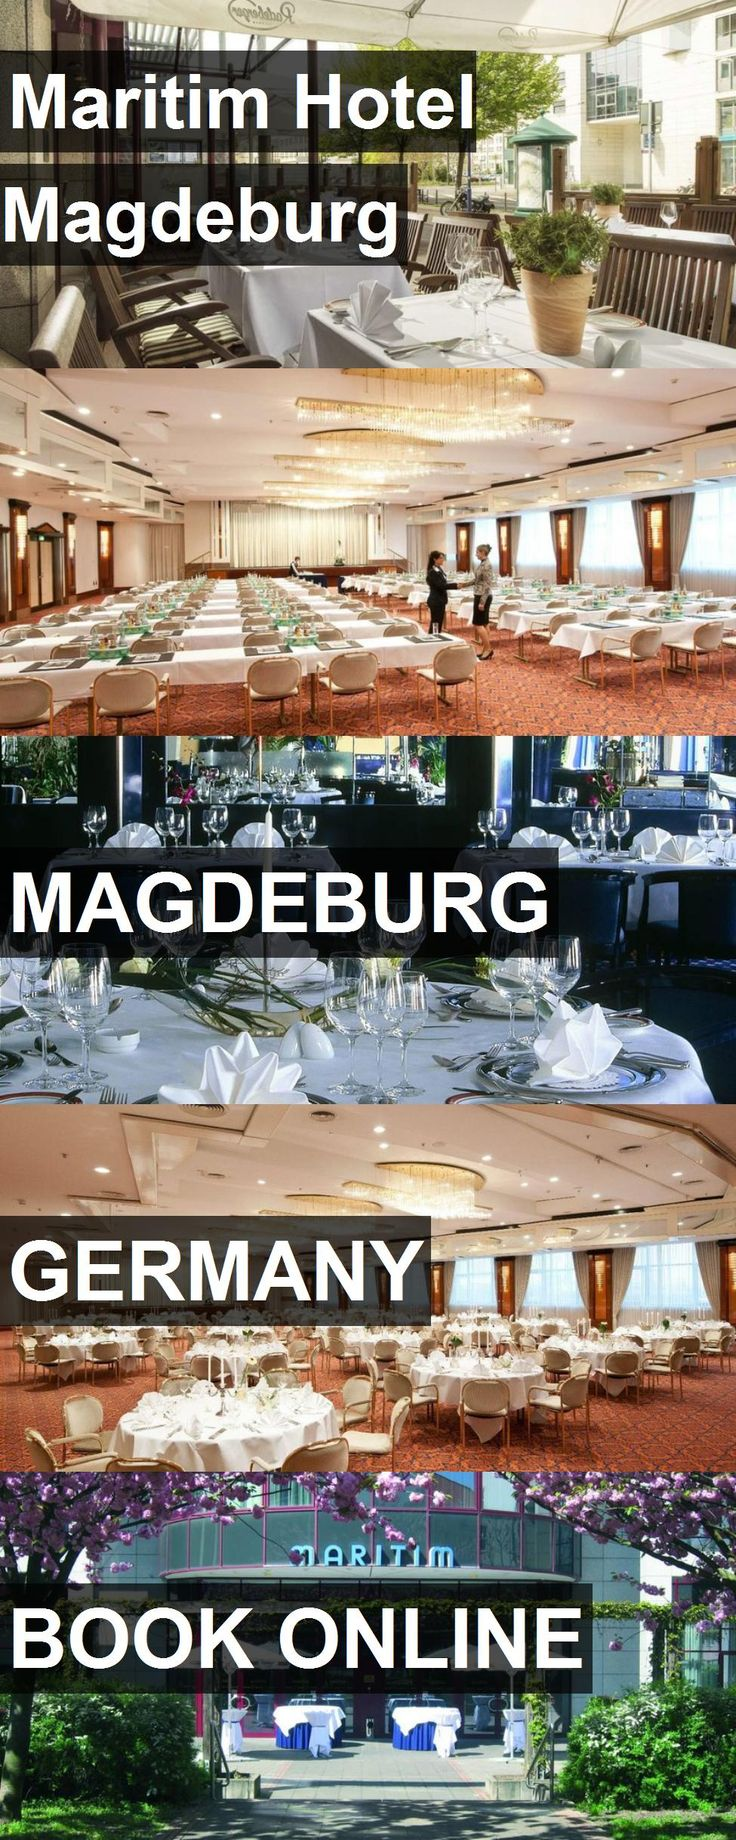 Maritim Hotel Magdeburg in Magdeburg, Germany. For more information, photos, reviews and best prices please follow the link. #Germany #Magdeburg #travel #vacation #hotel